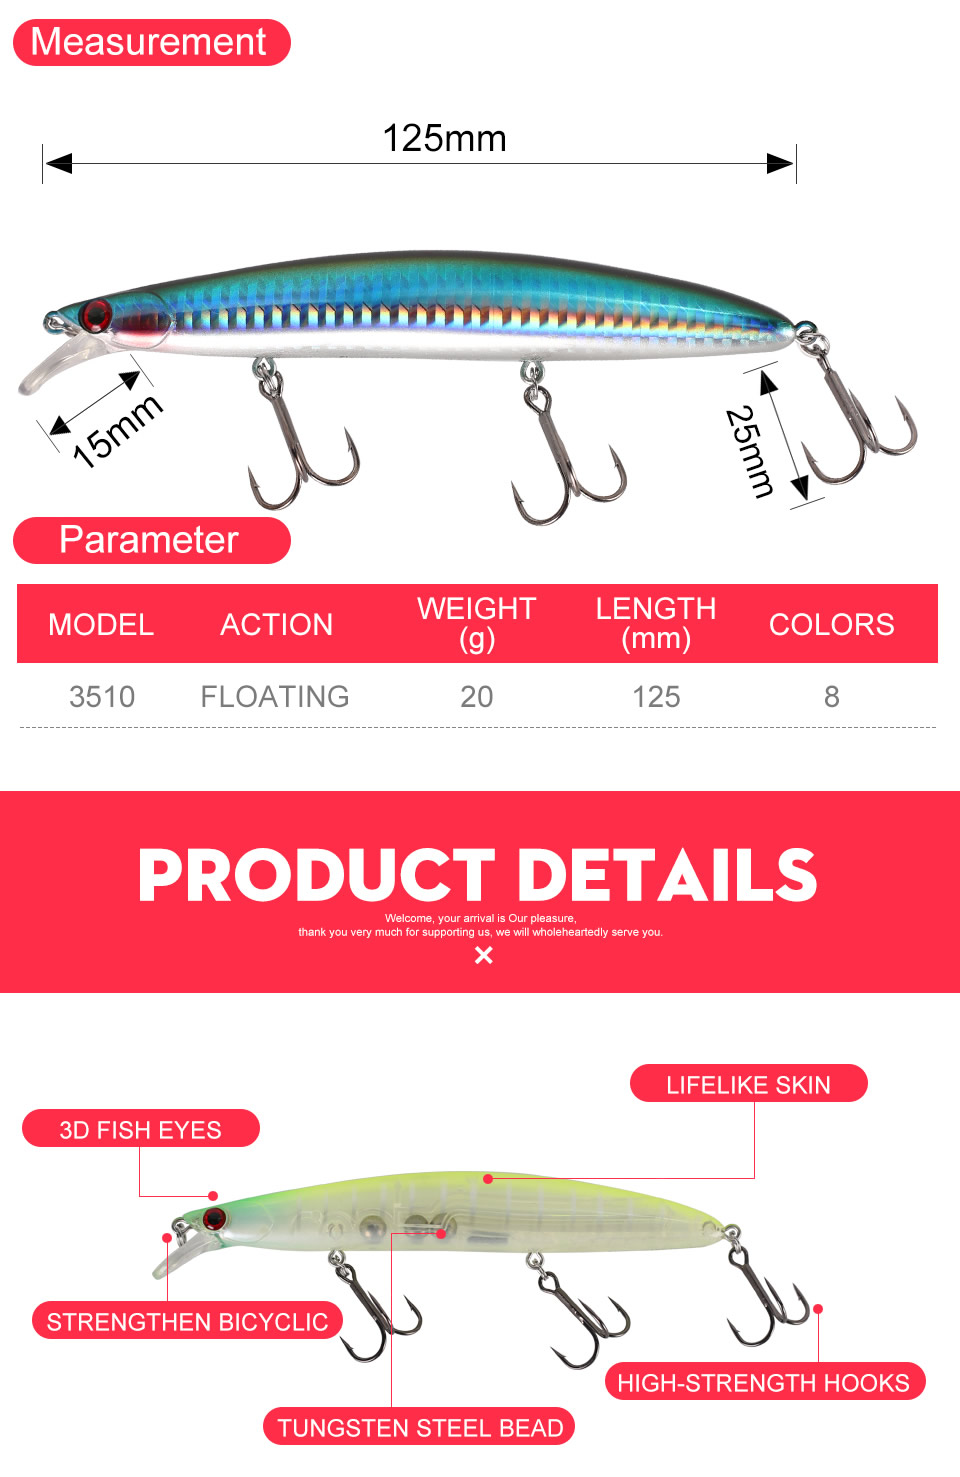 Kingdom 2019 Professional Floating JERKBAIT Fishing Lures 125mm 20g Wobblers Minnow Hard Baits Depth 0.2-0.4m Bass Pike Bait Lure (3)